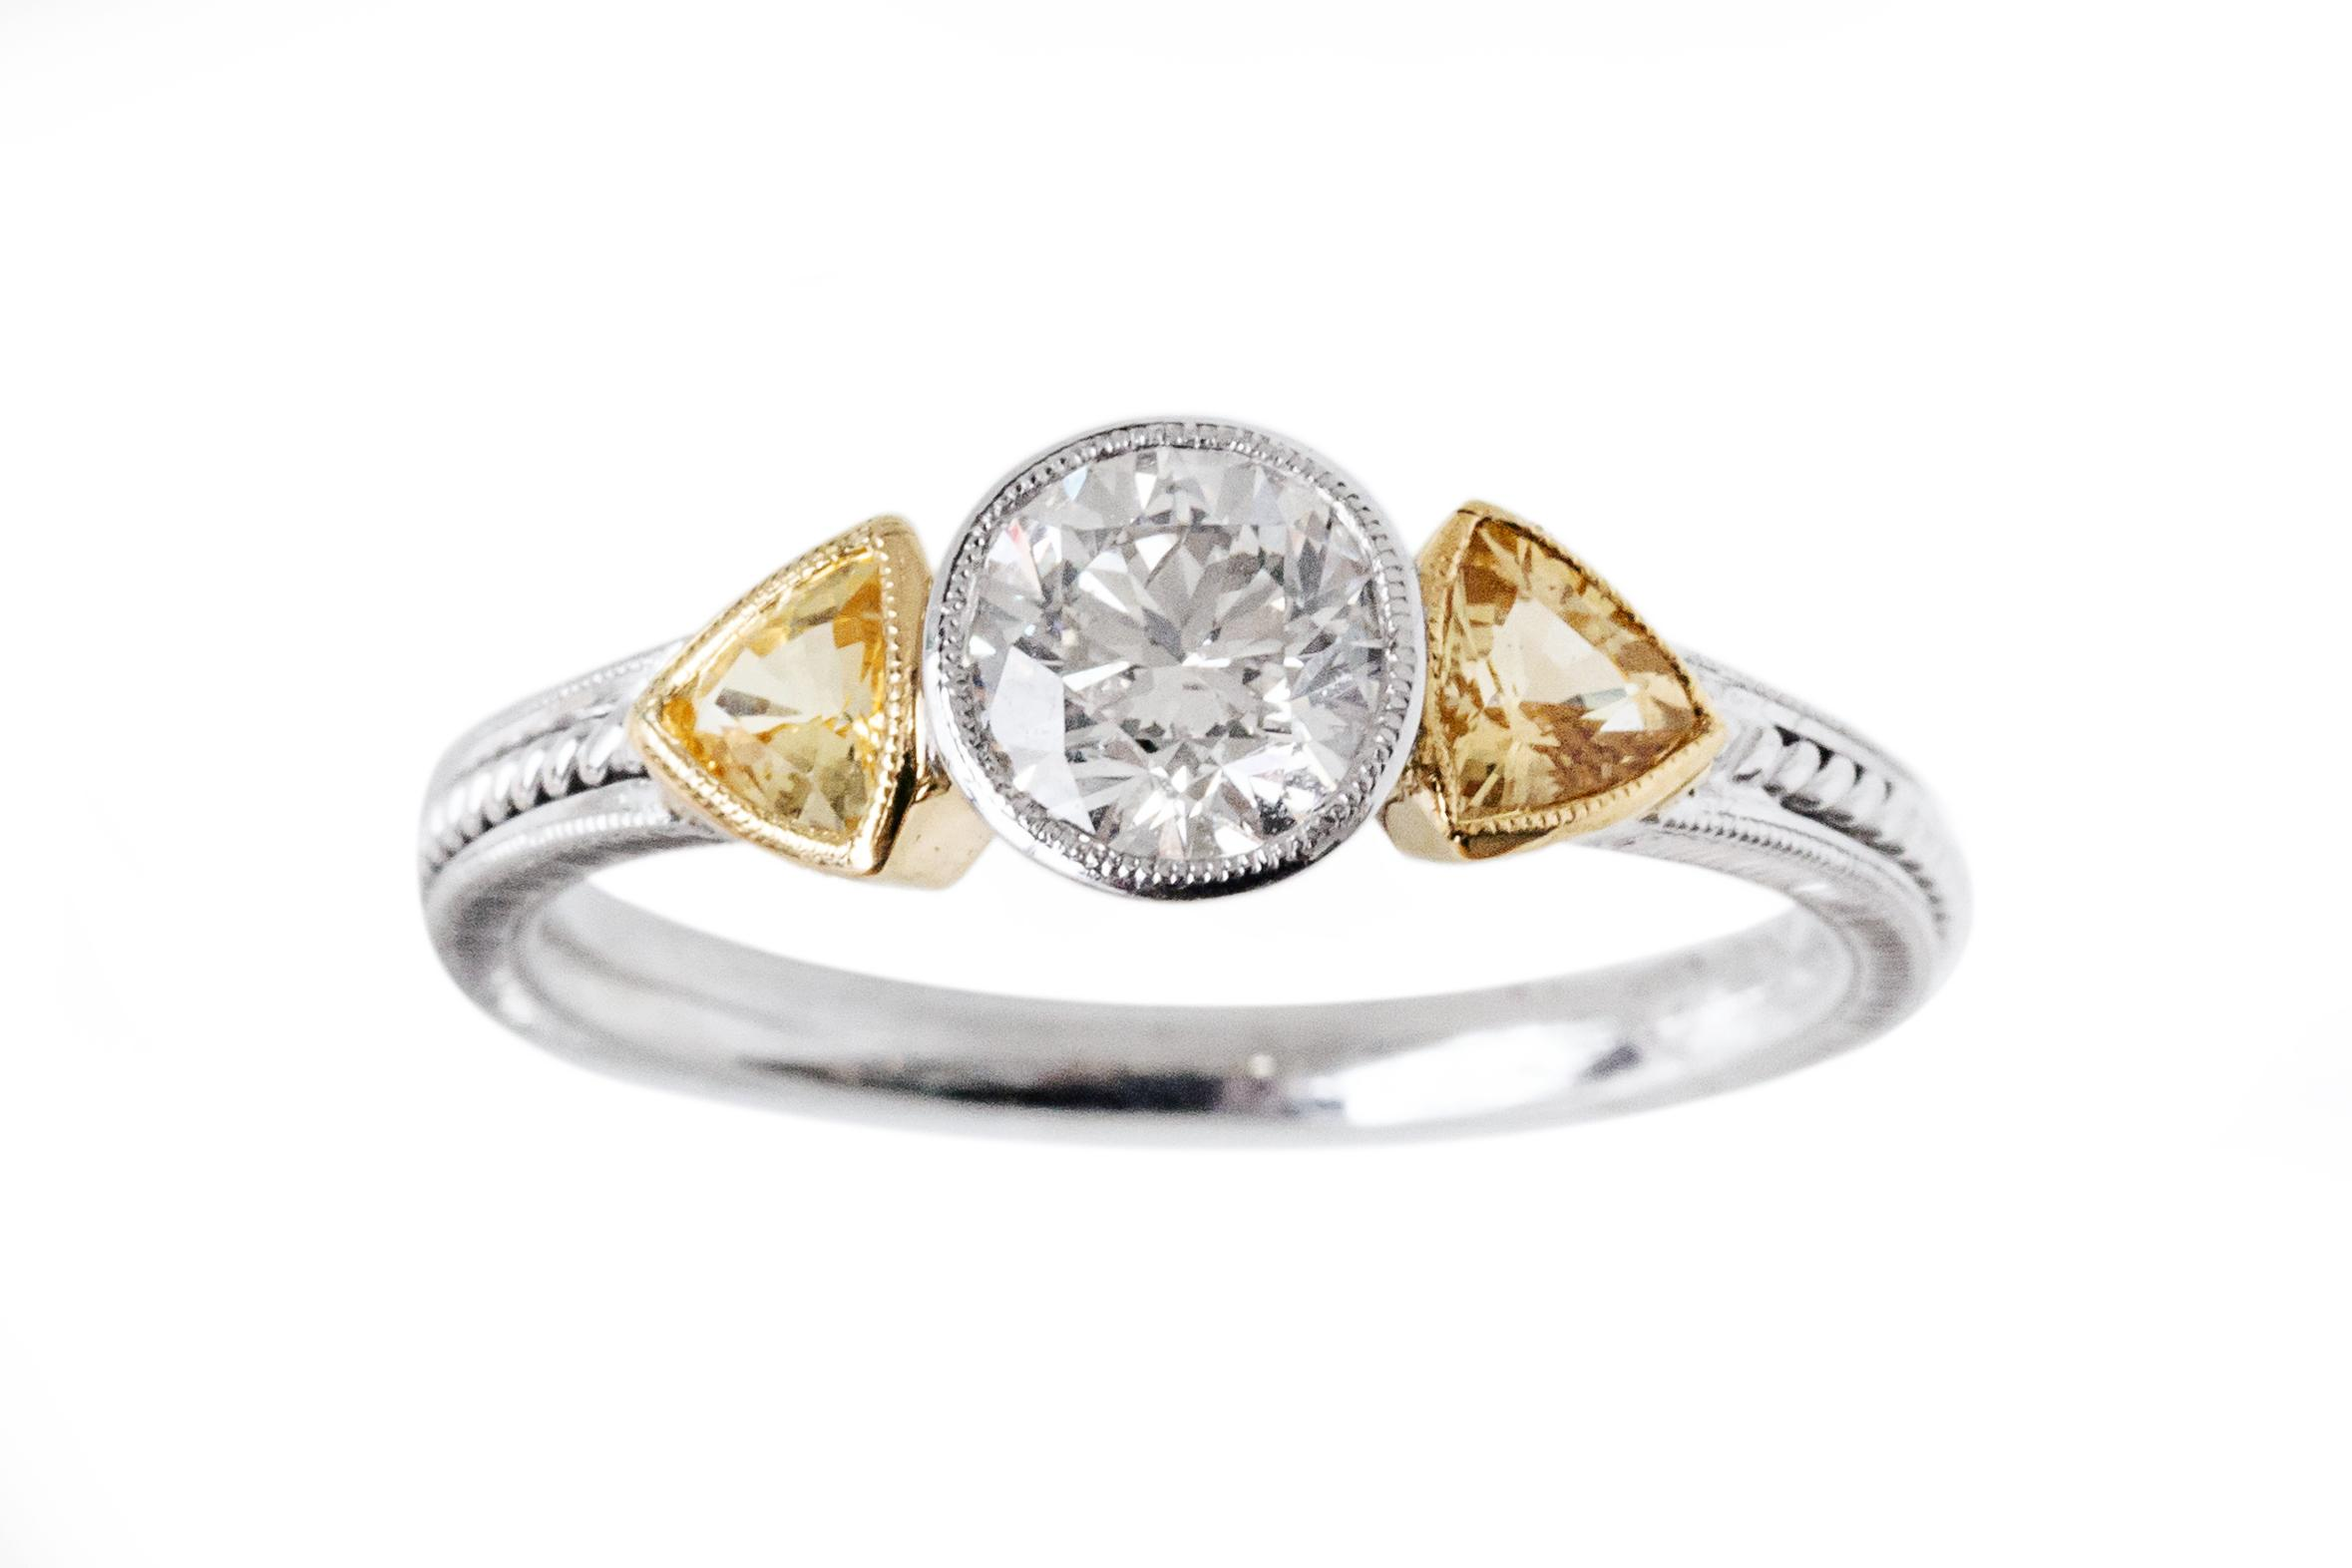 18ct White and Yellow Gold, Diamond and Yellow Sapphire Ring